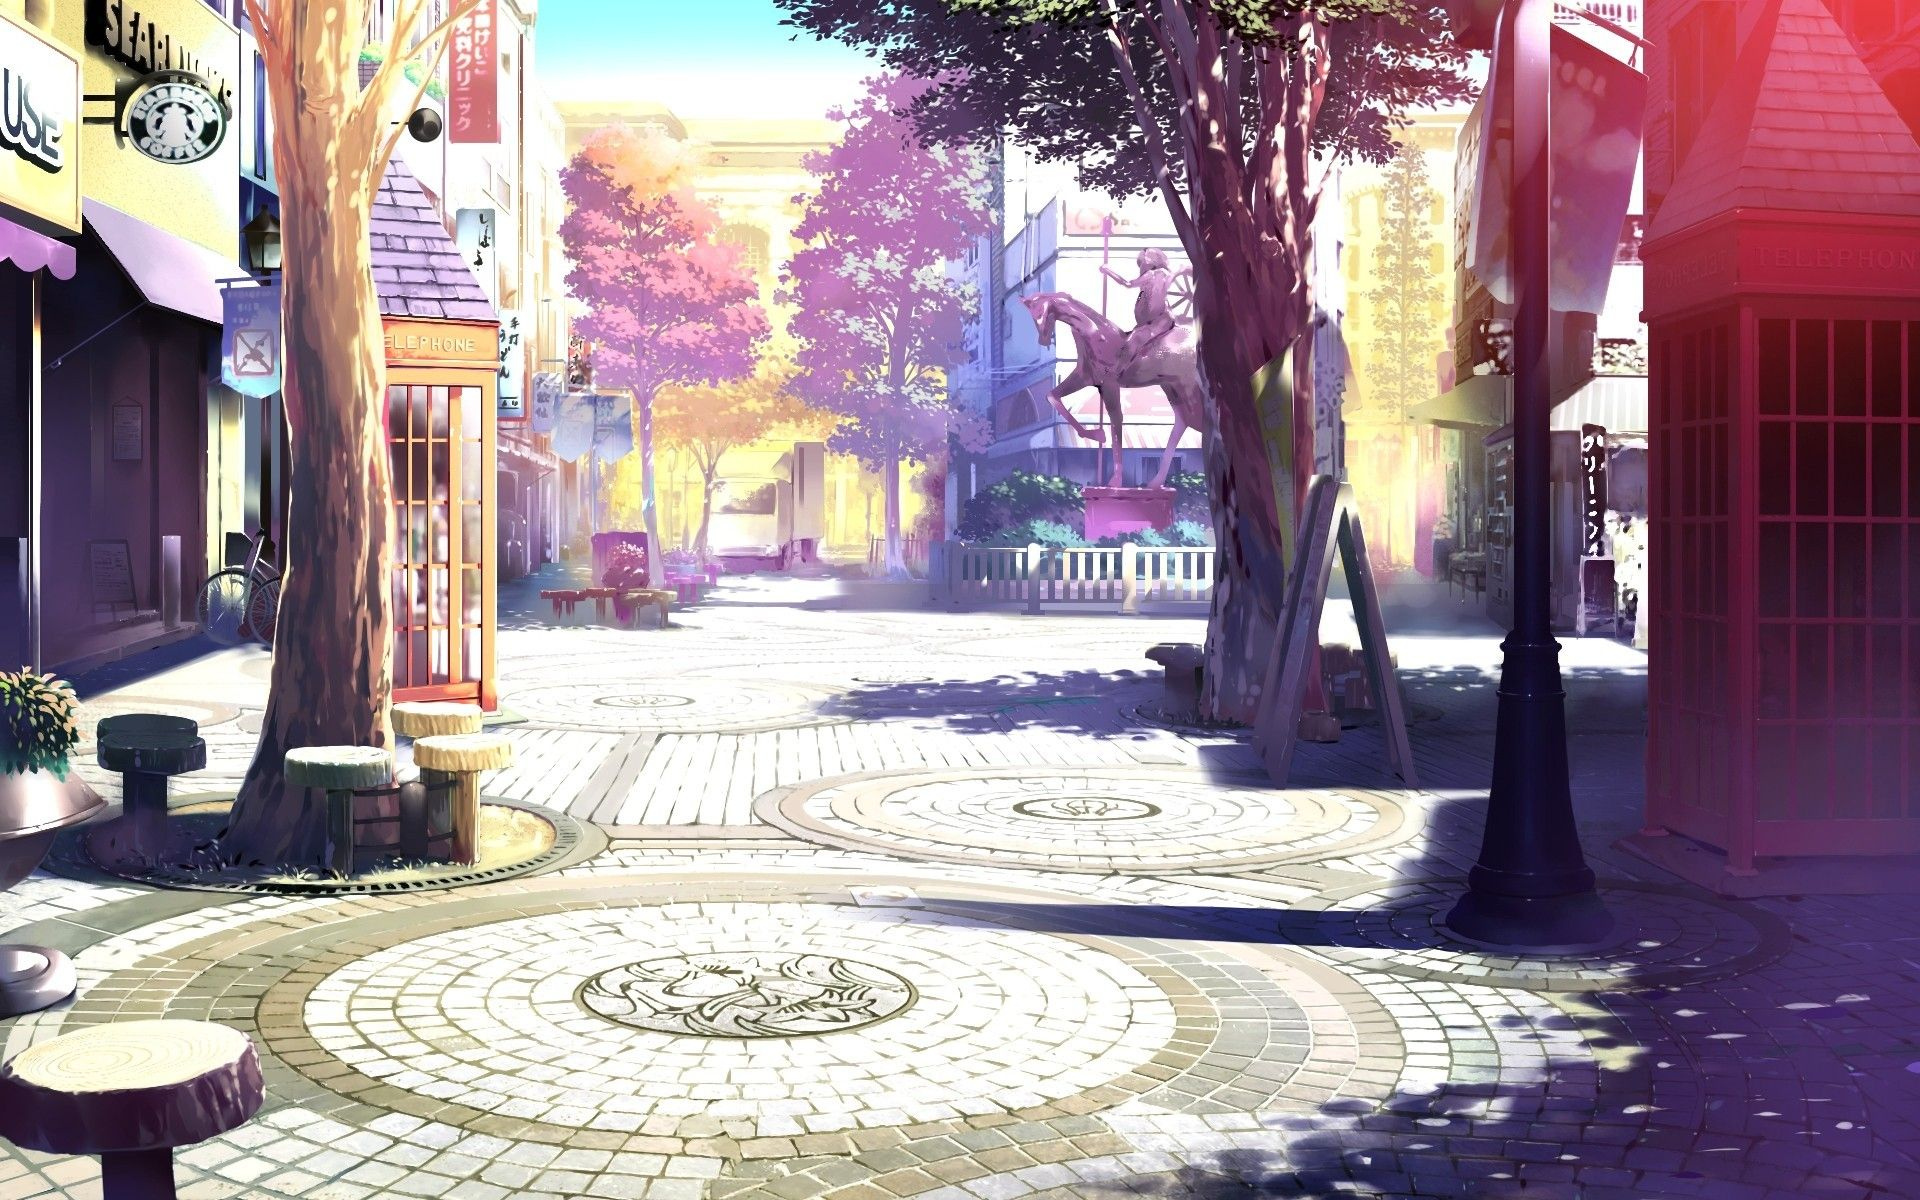 Anime 1920x1200 Drawing Artwork Landscape City Architecture Town Square Anime Anime Scenery Scenery Wallpaper Beautiful Scenery Wallpaper